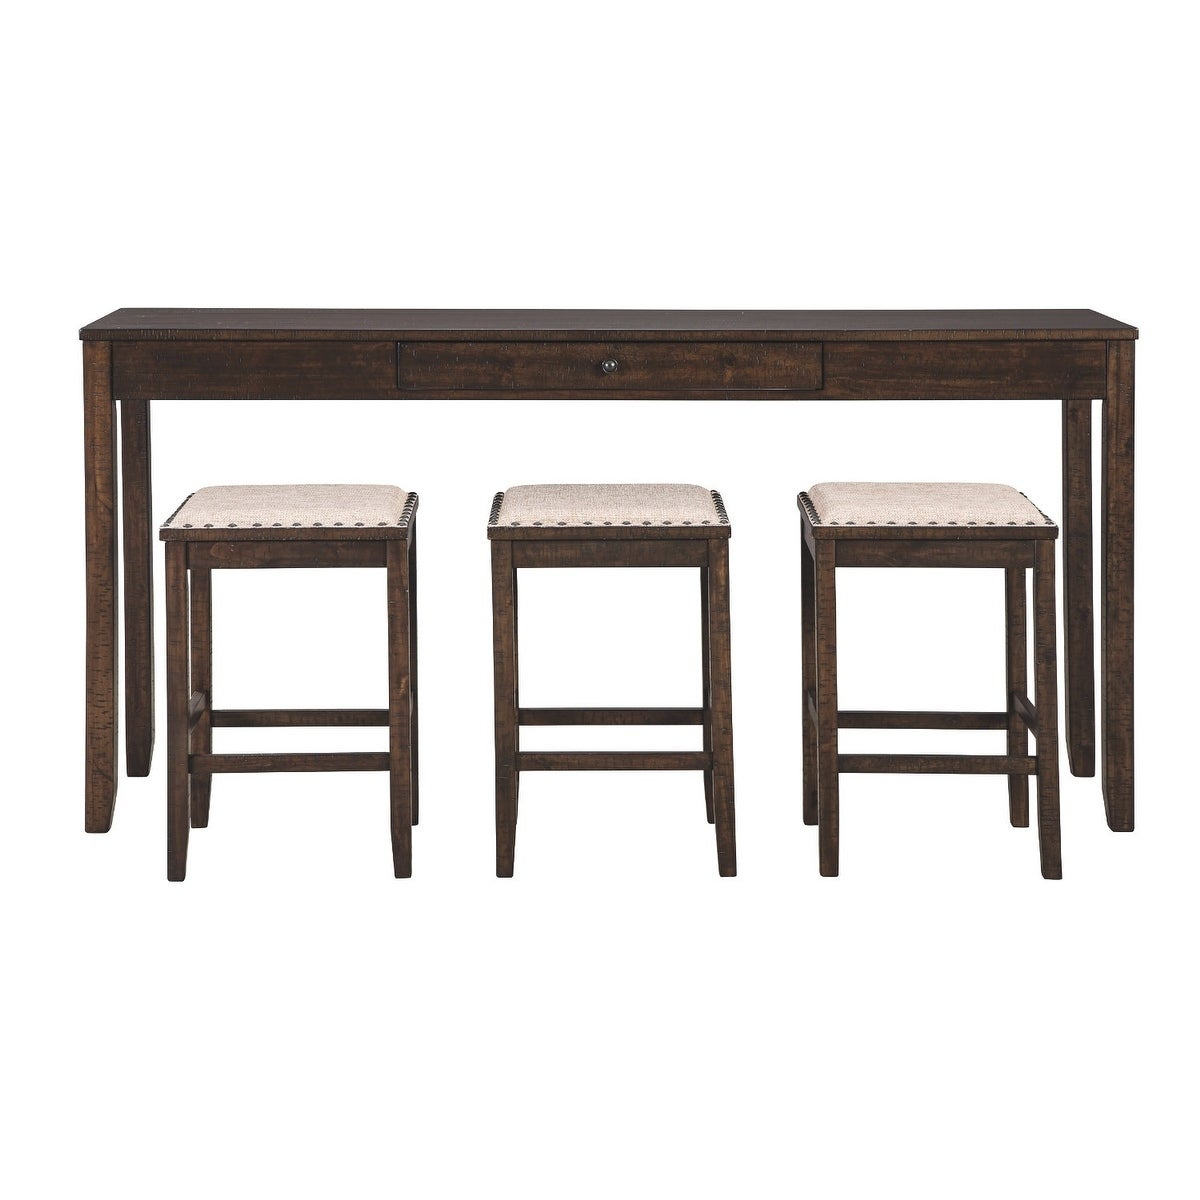 Shop Rokane Rectangular Counter Height Dining Set Table And 3 Bar